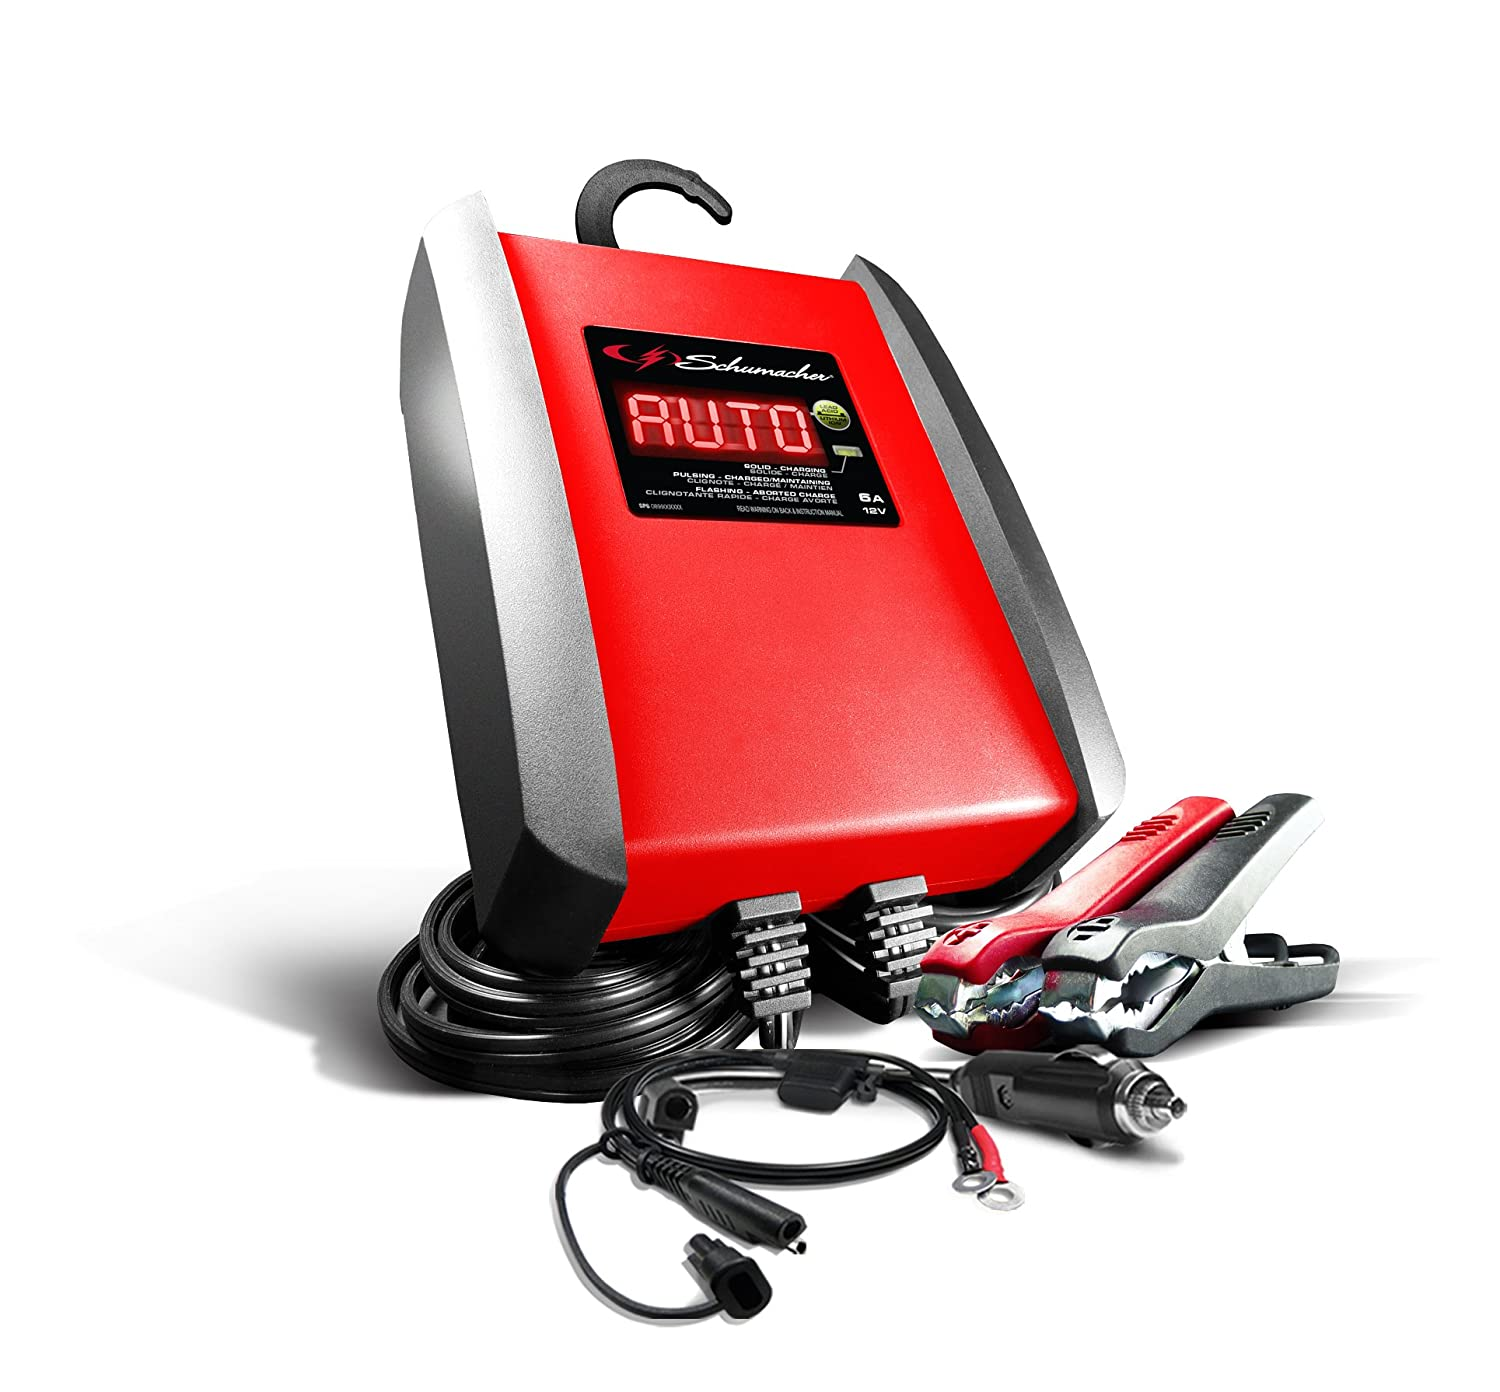 Schumacher SP1298 6A 12V Automatic Battery Charger and Maintainer